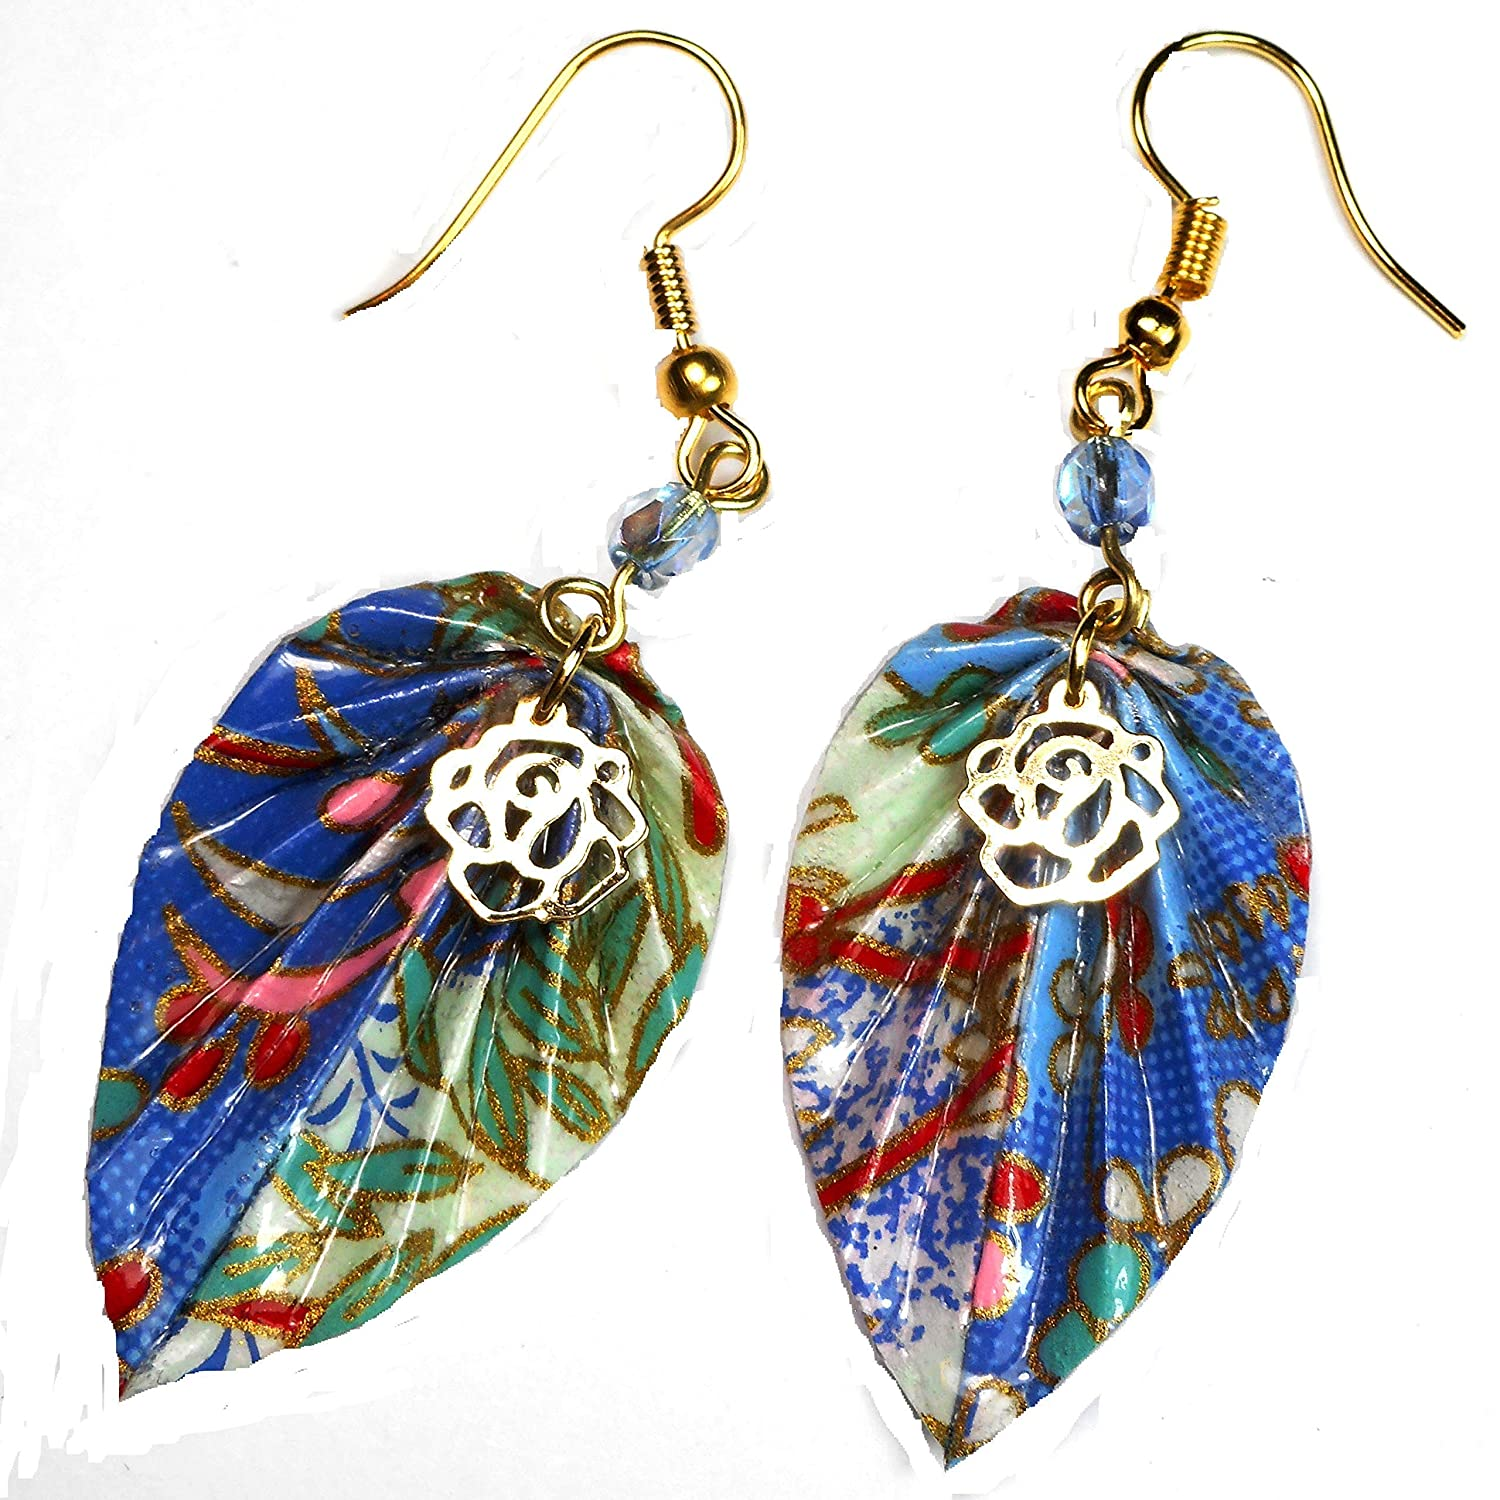 Handcrafted Jewelry Gift Blue Red Teal Paper Origami Leaf Earrings with Flower Charm and Glass Bead